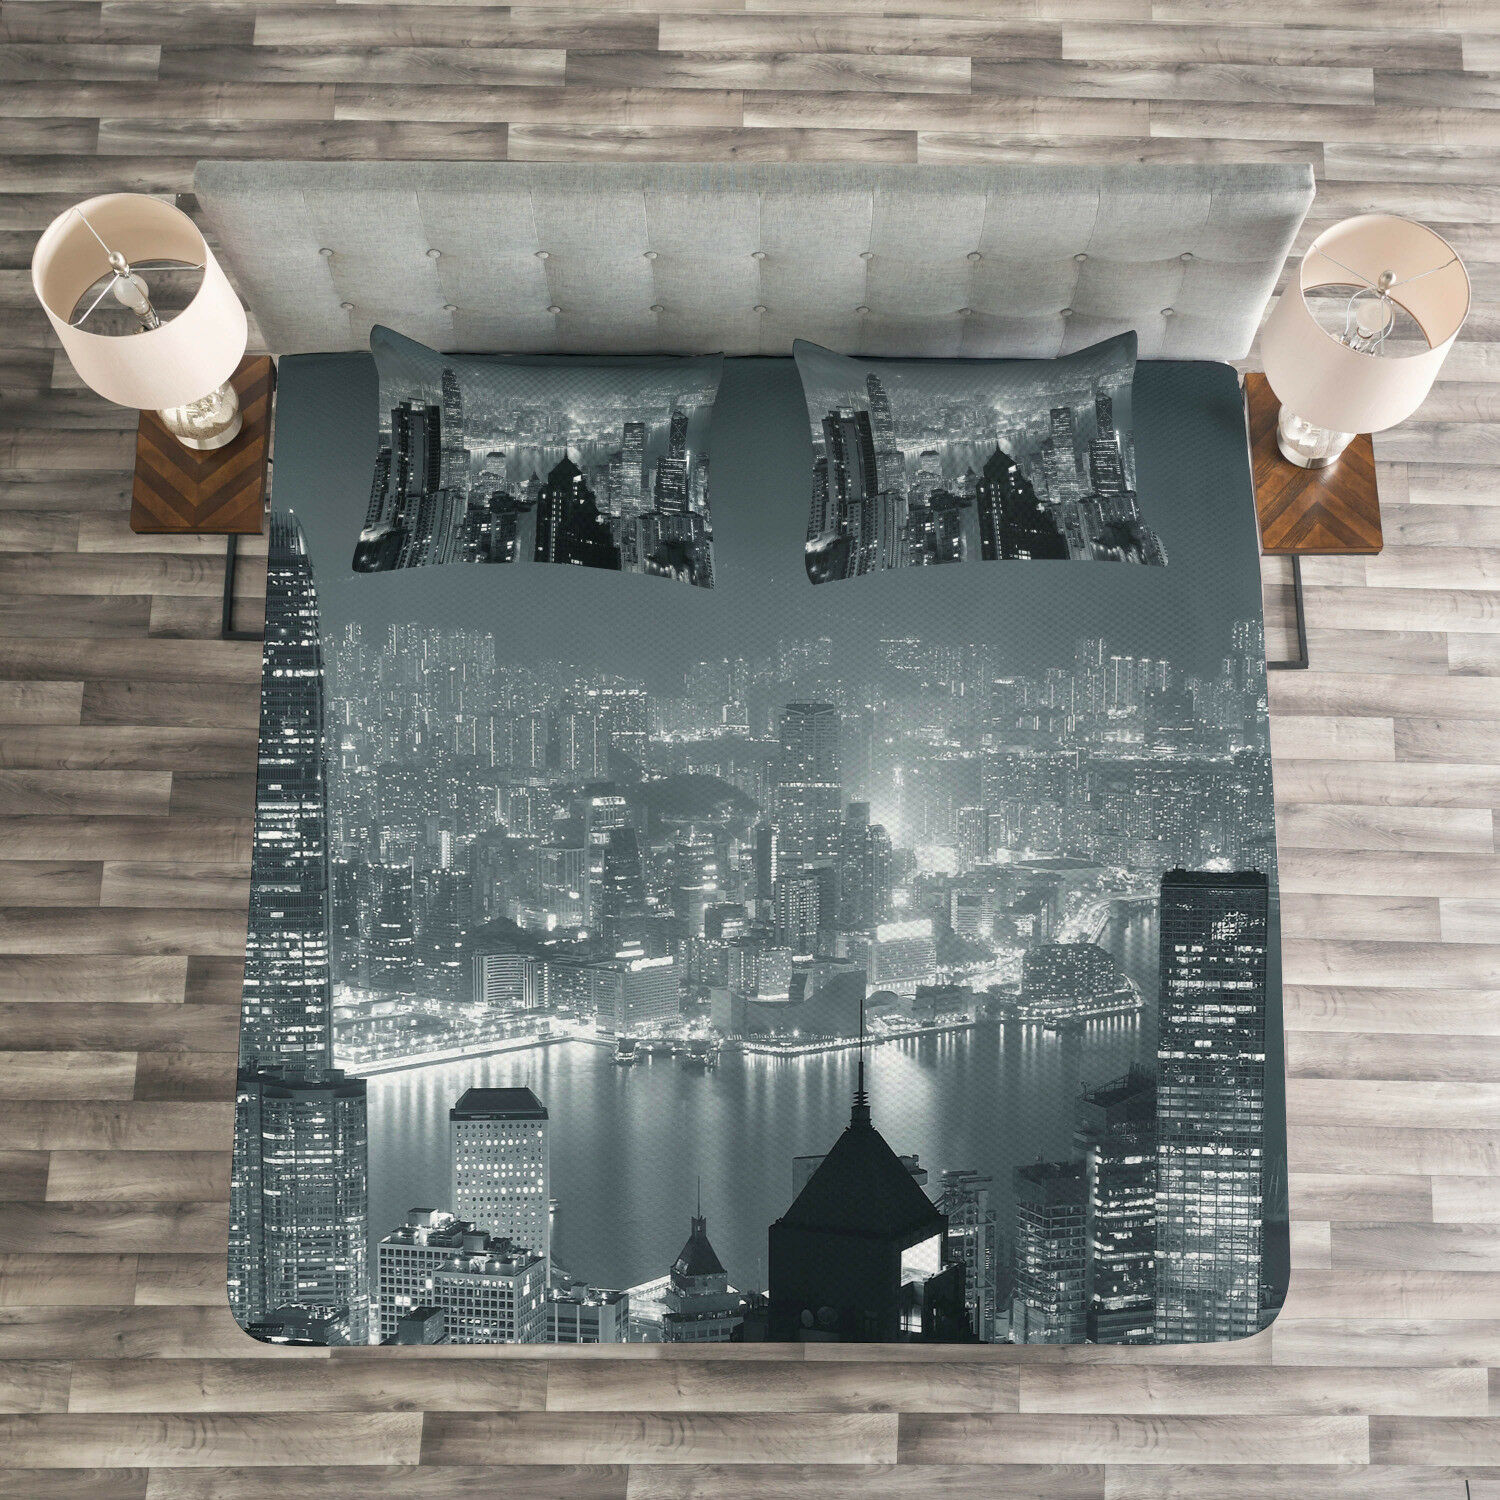 City Quilted Bedspread & Pillow Shams Set, Aerial Night Landscape Print